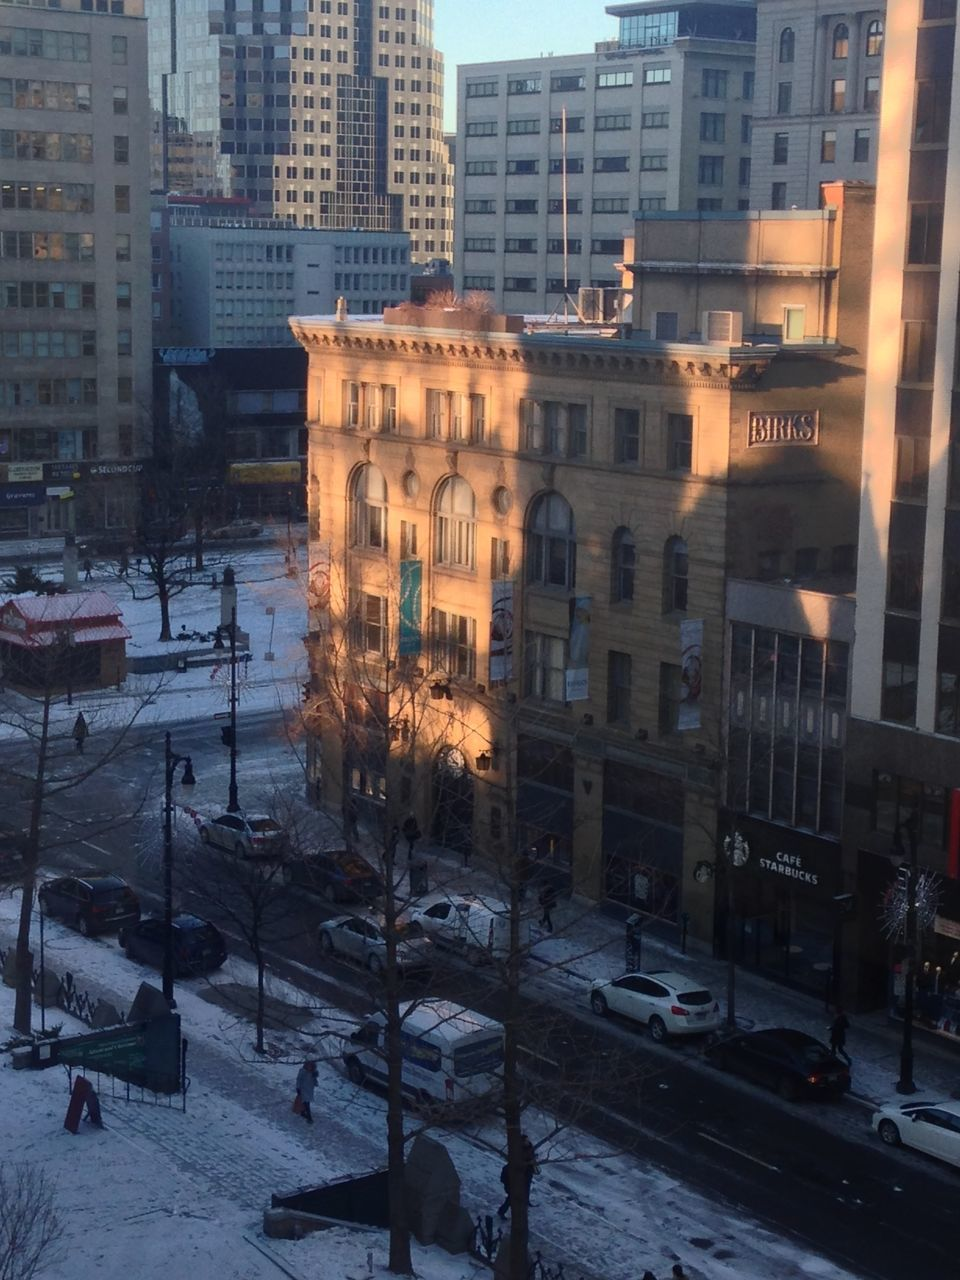 building exterior, architecture, city, snow, built structure, winter, cold temperature, cityscape, outdoors, street, city life, no people, road, skyscraper, day, nature